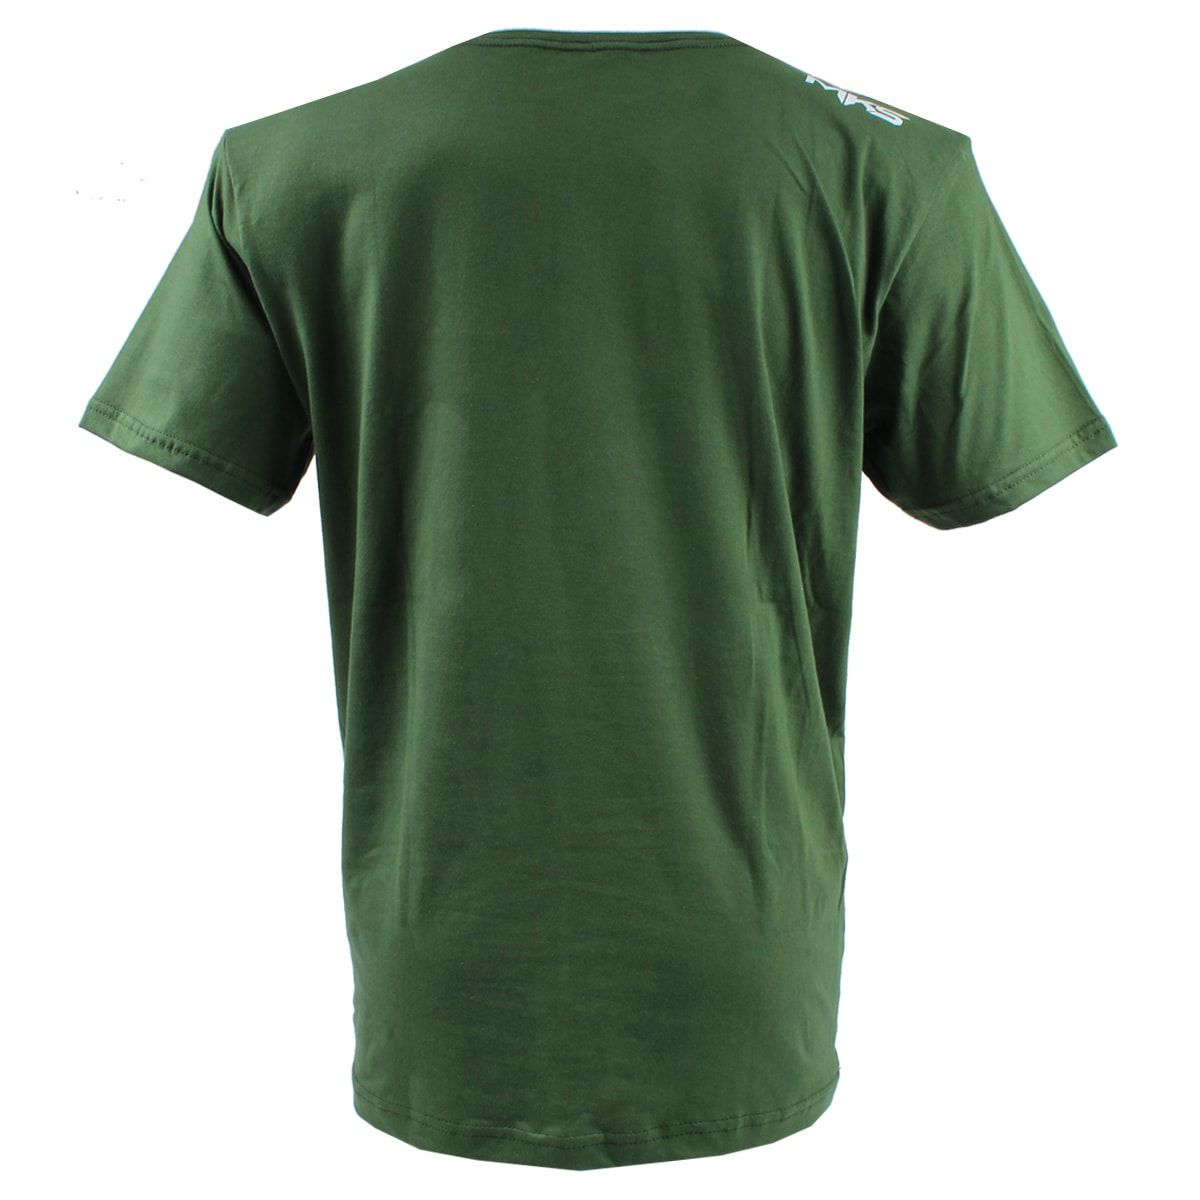 Camiseta MKS Nations Brazilian Jiu-Jitsu - Verde